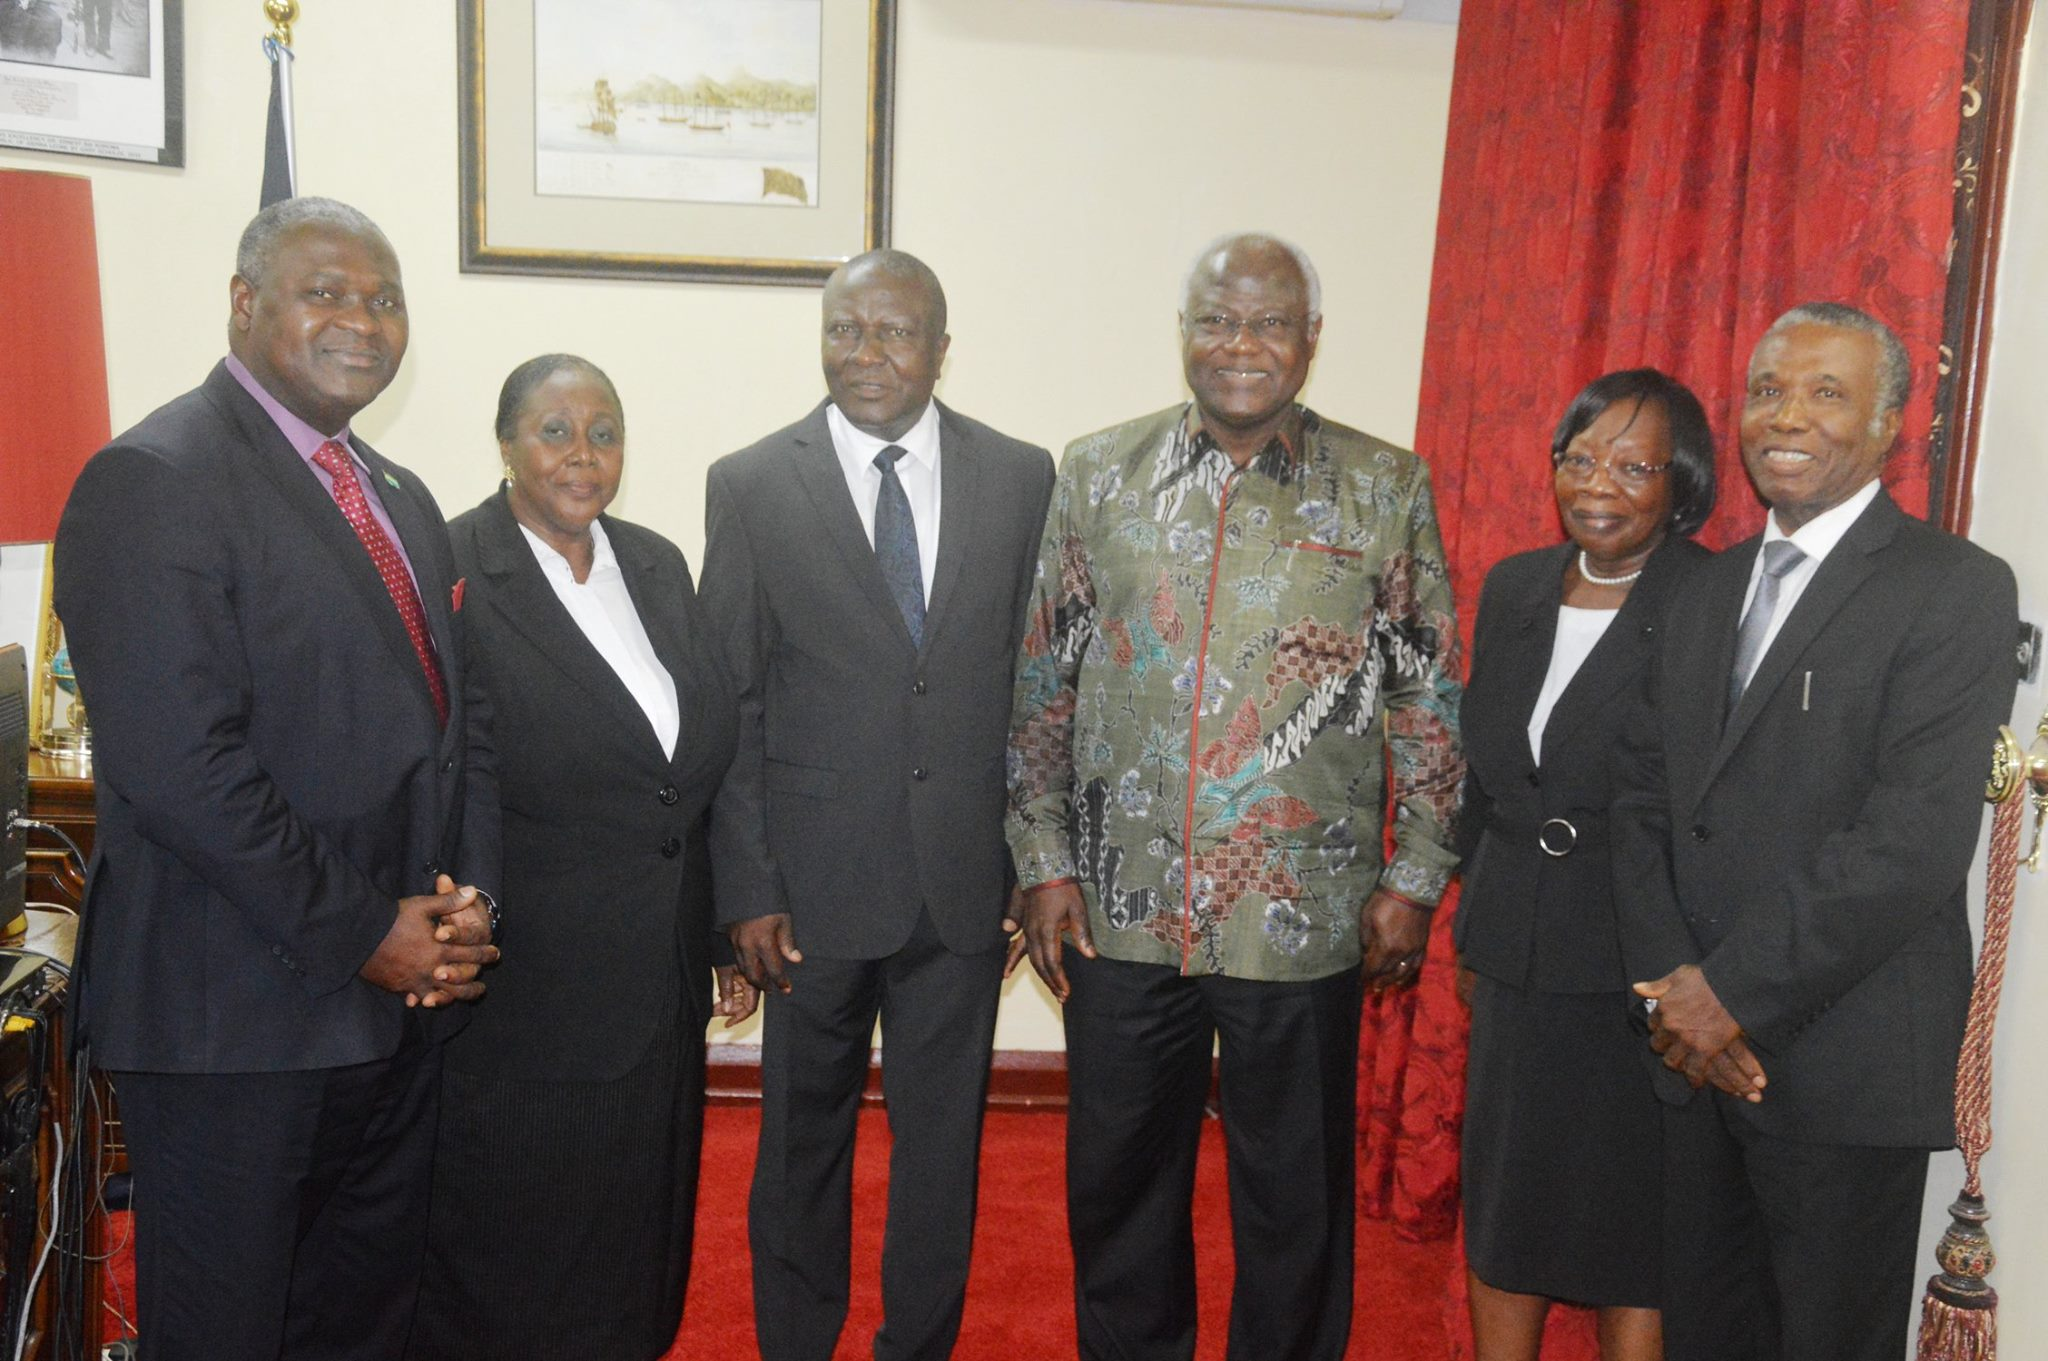 Sierra Leone:- Chief Justice, 2 Supreme Court Judges Take Oath of Office